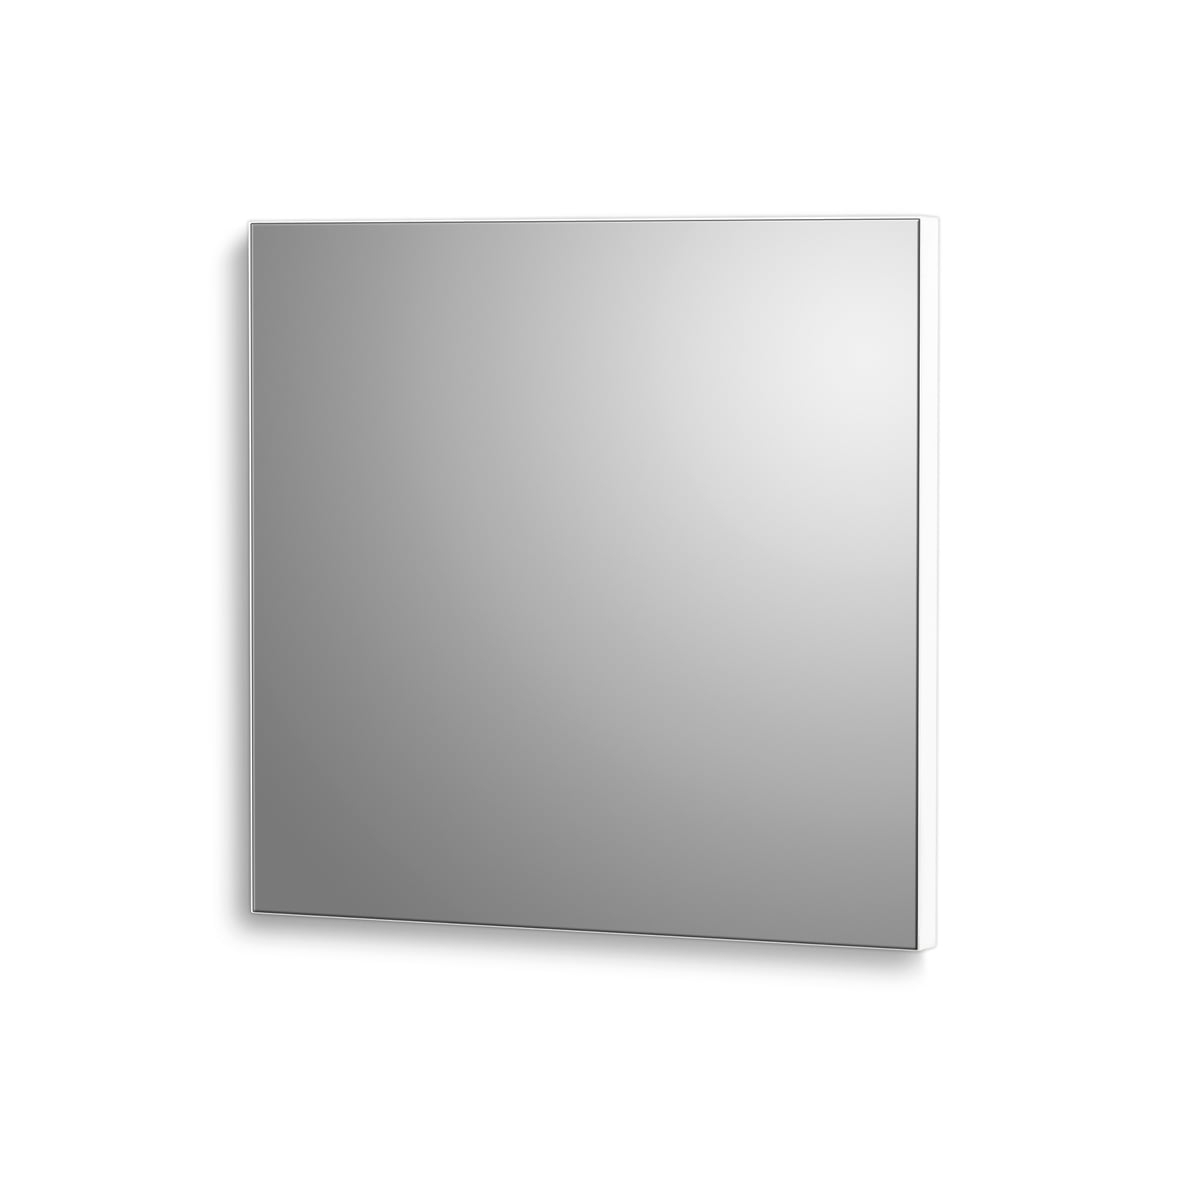 Mini Wall Mirrors Within Famous Verti Copenhagen – Verti Mirror Mini Wall Mirror, 15 X 15 Cm, White (View 1 of 20)